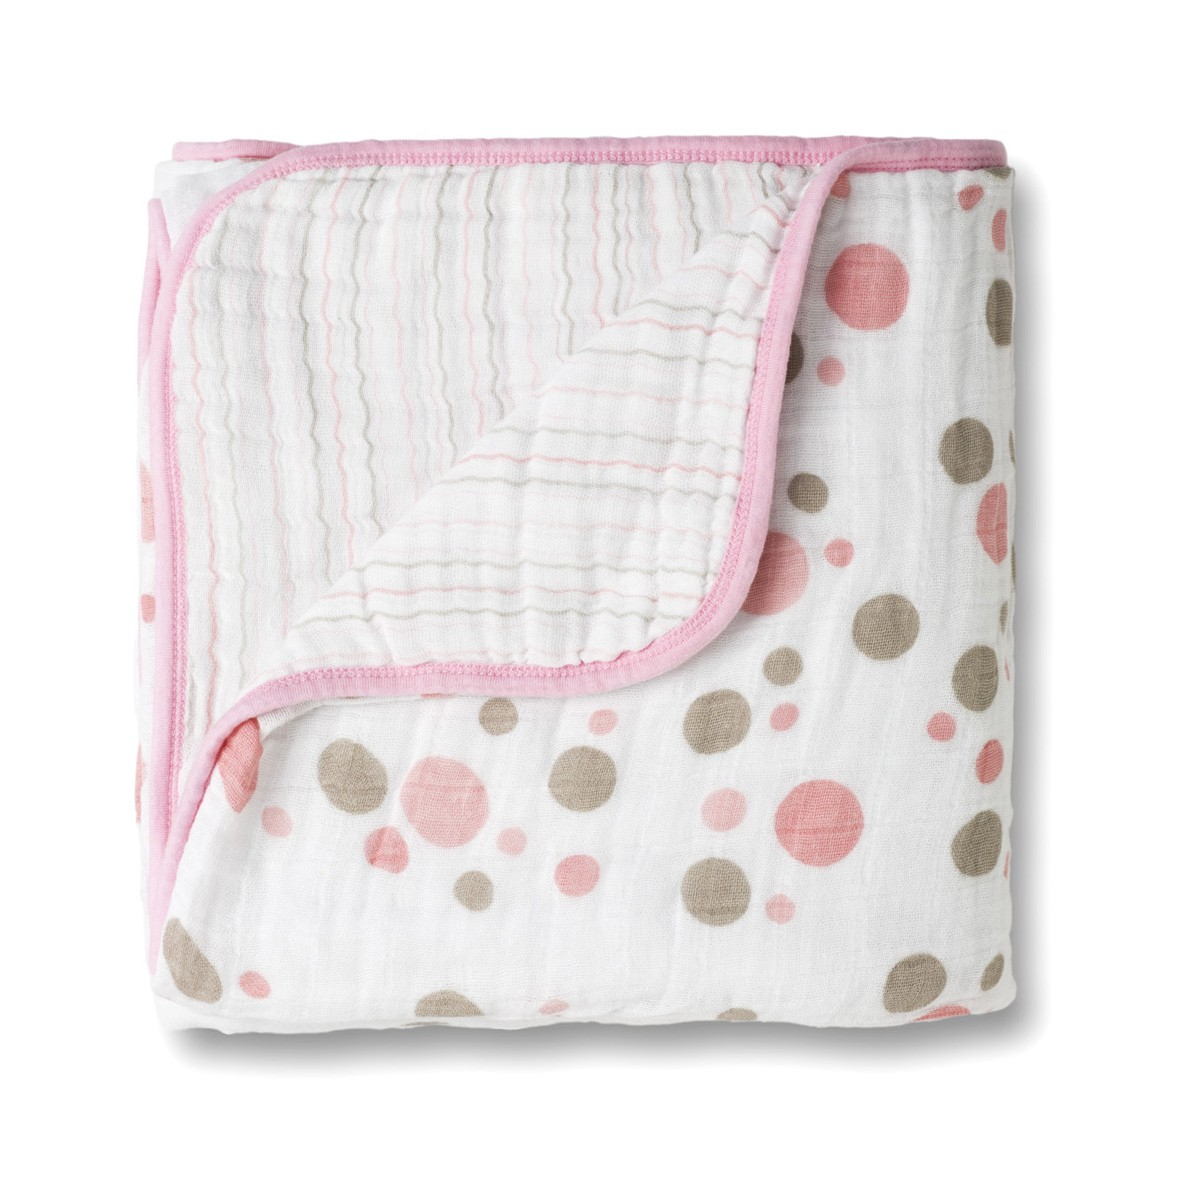 Online shopping for Baby from a great selection of Bed Blankets, Swaddling Blankets, Toddler Blankets, Receiving Blankets & more at everyday low prices.